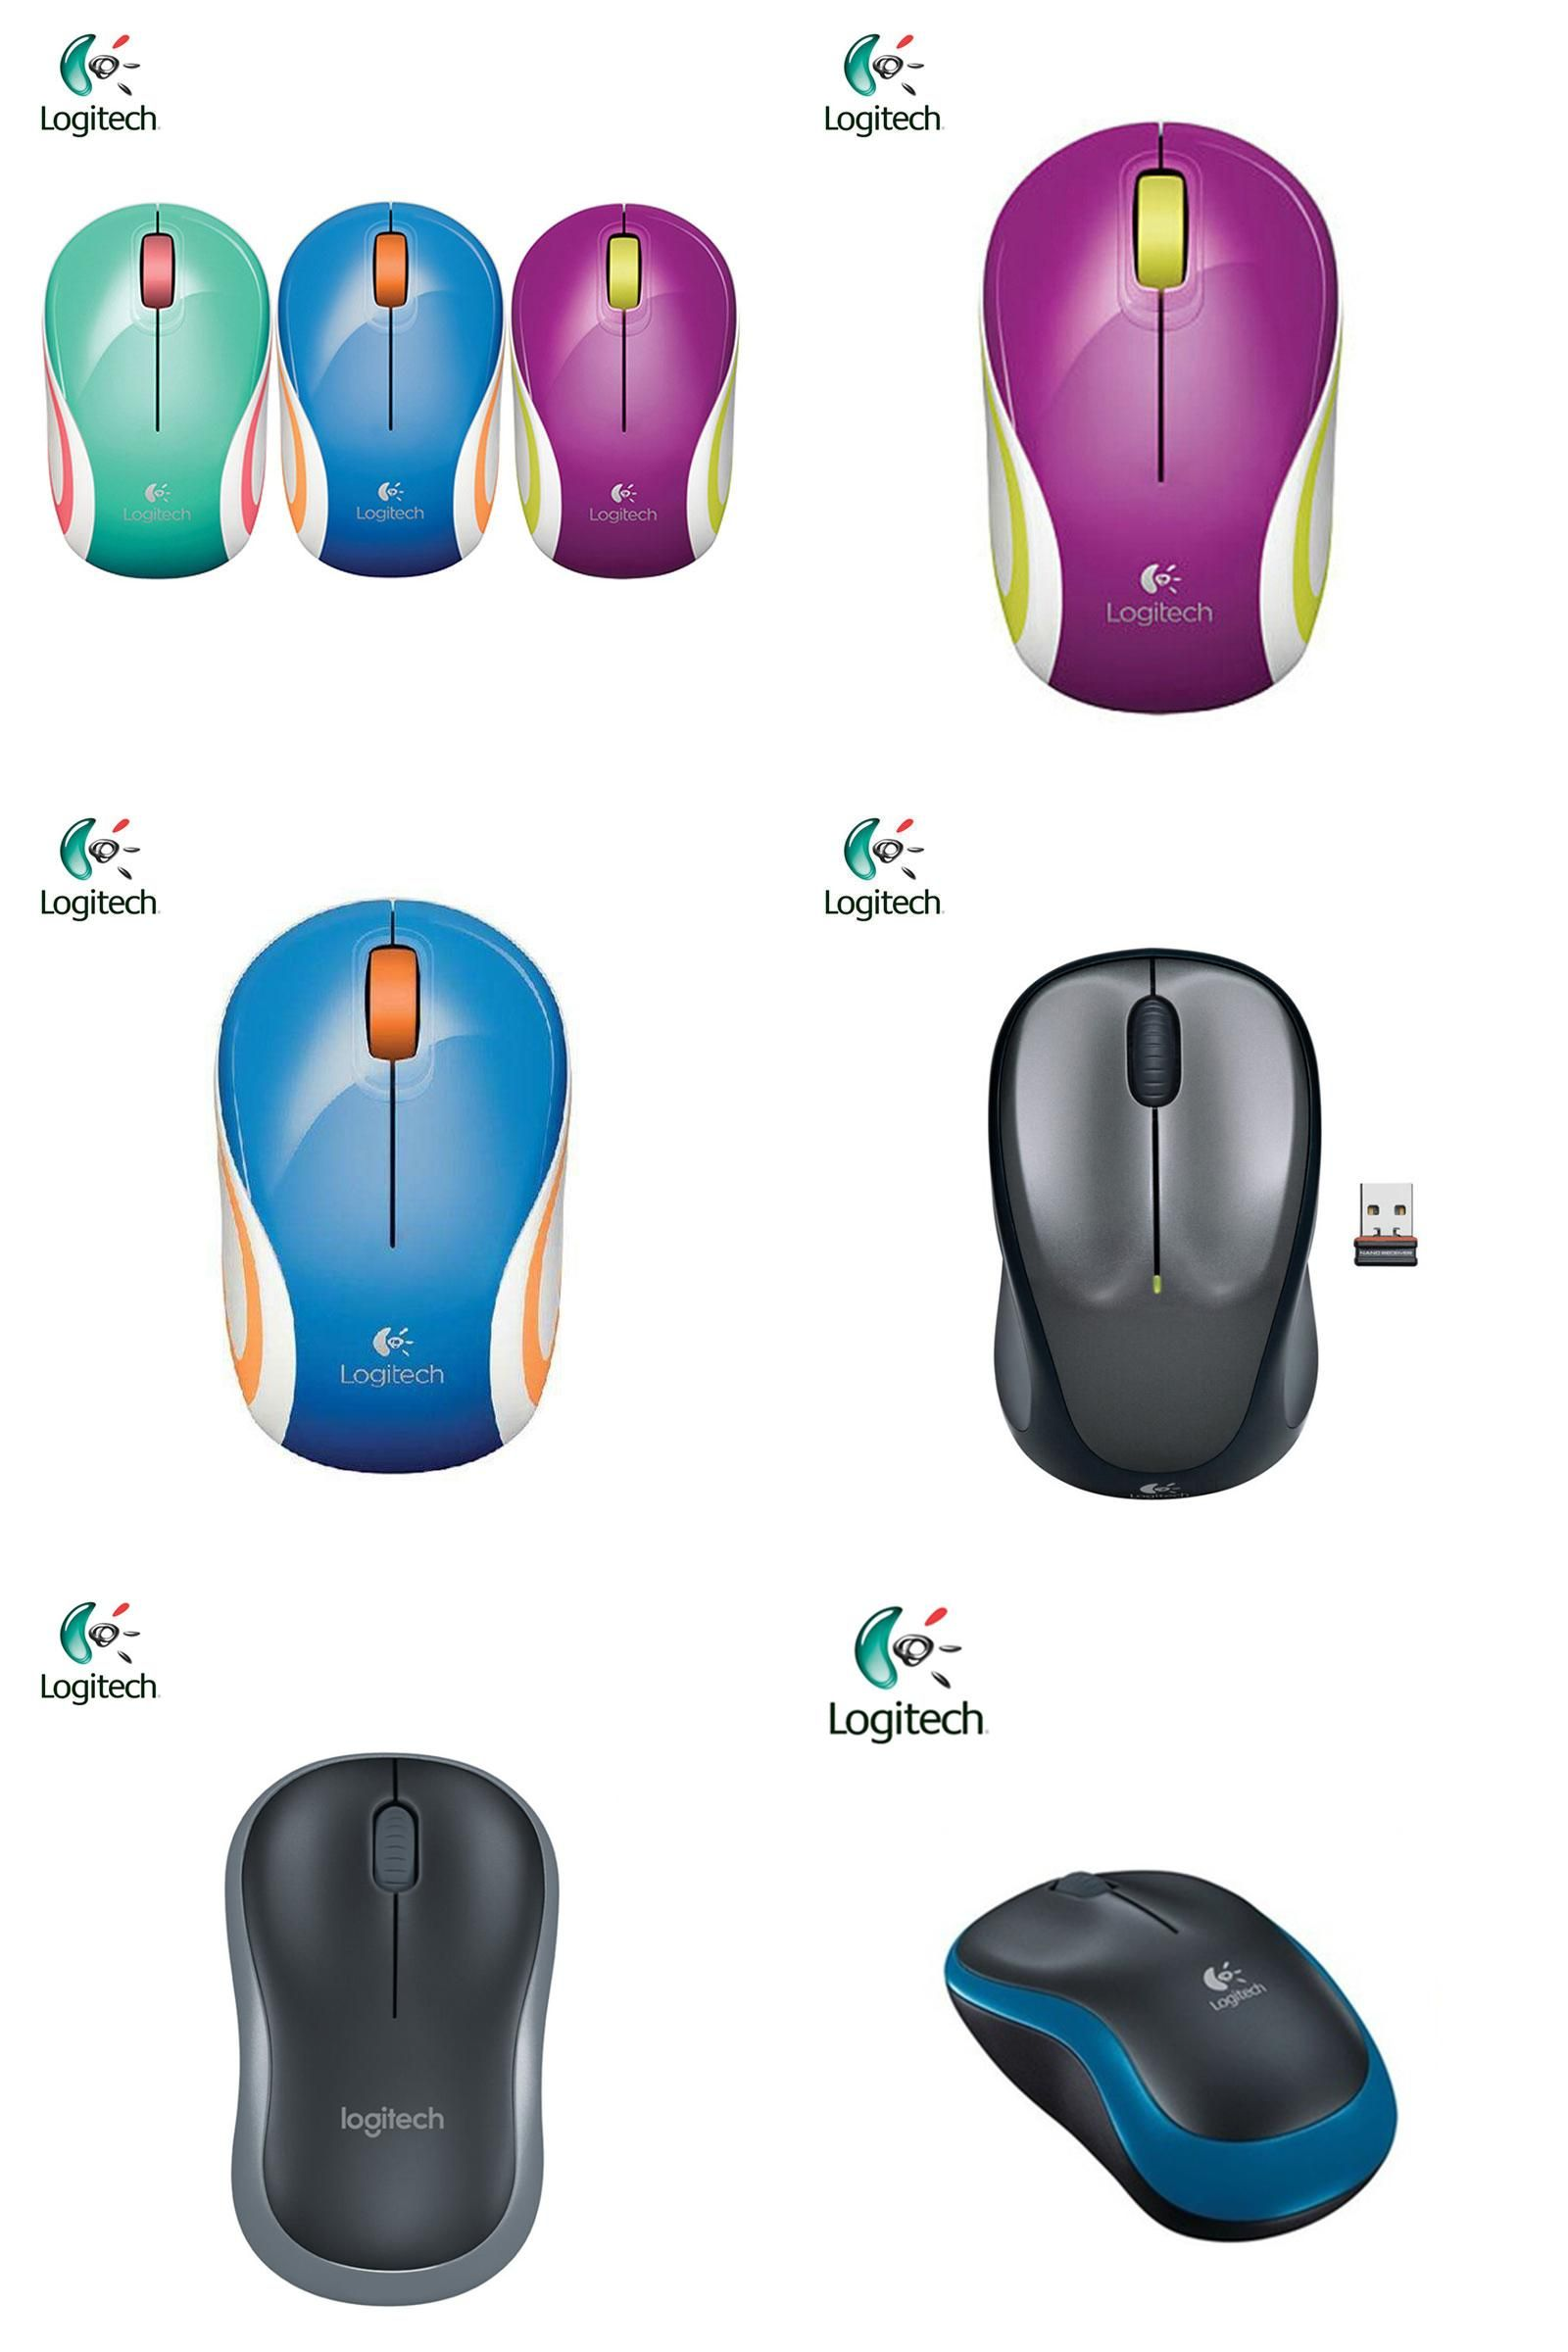 Visit to Buy] Logitech M187 Wireless Mouse with 2 4GHz USB